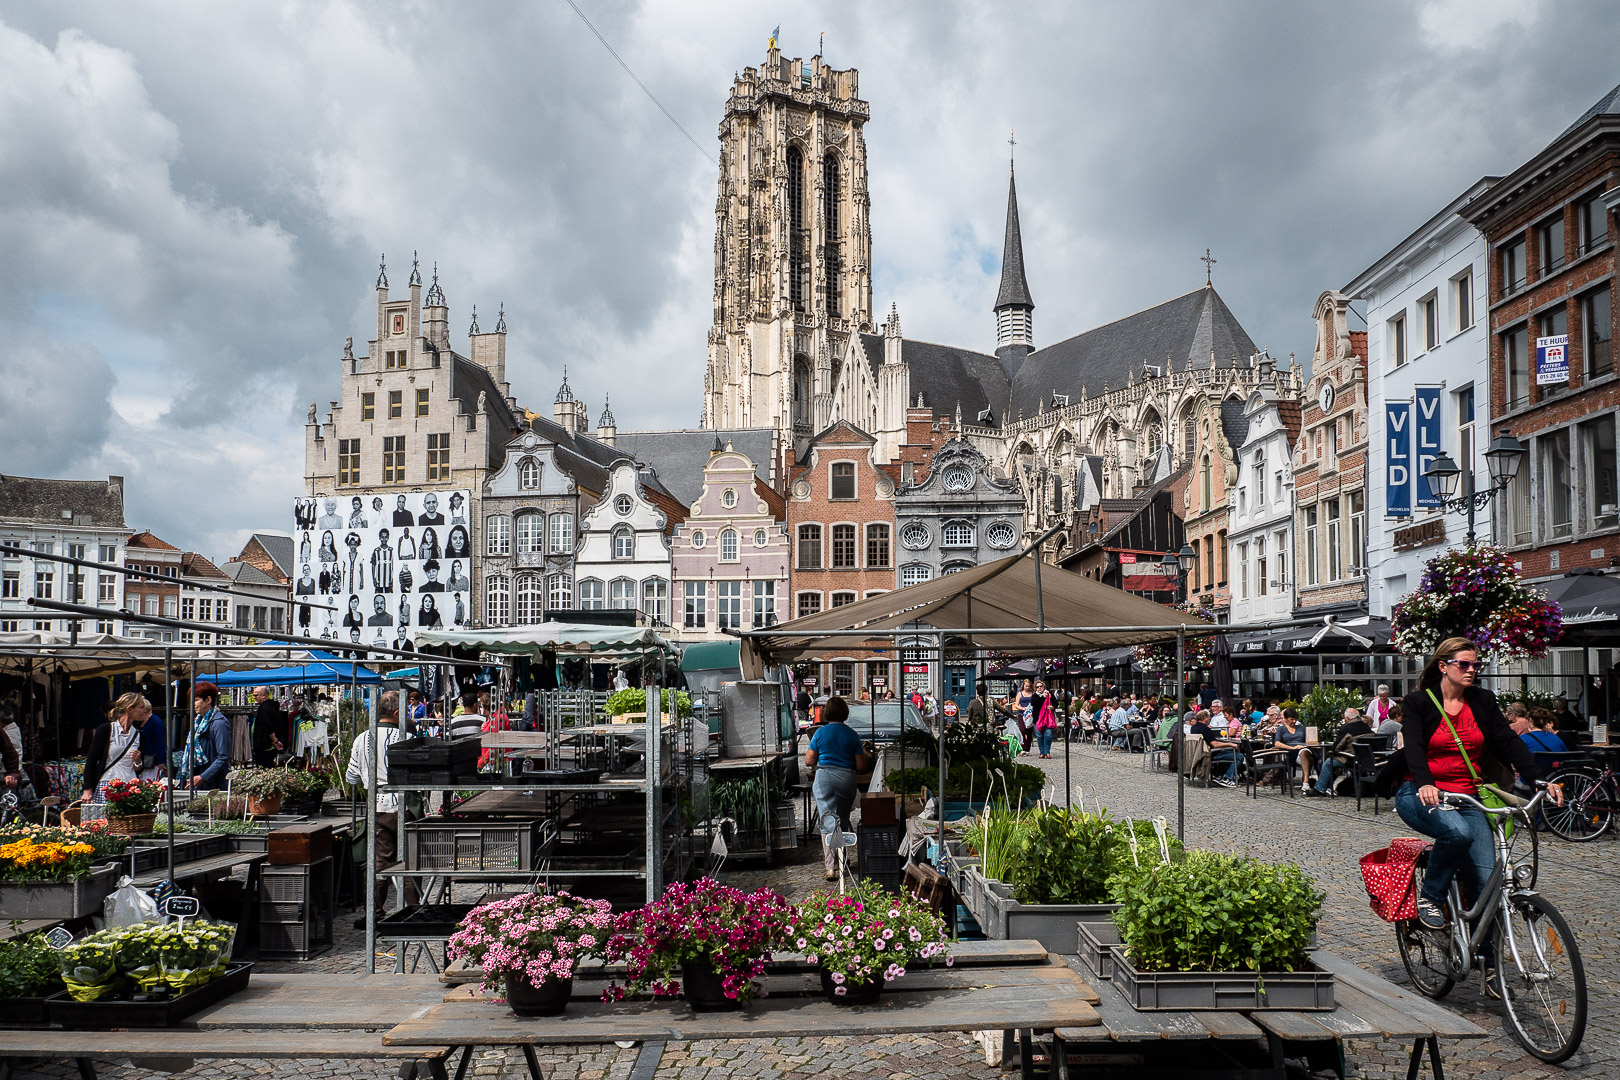 The Grote Markt / Great Market / Town Square etc